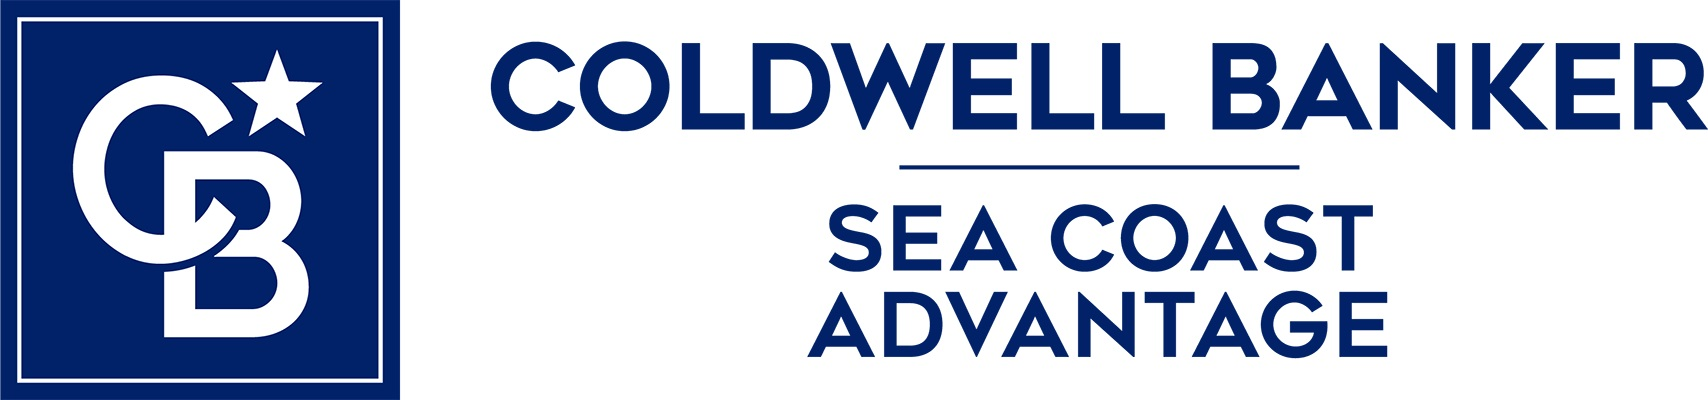 Claudia Sherman - Coldwell Banker Sea Coast Advantage Realty Logo